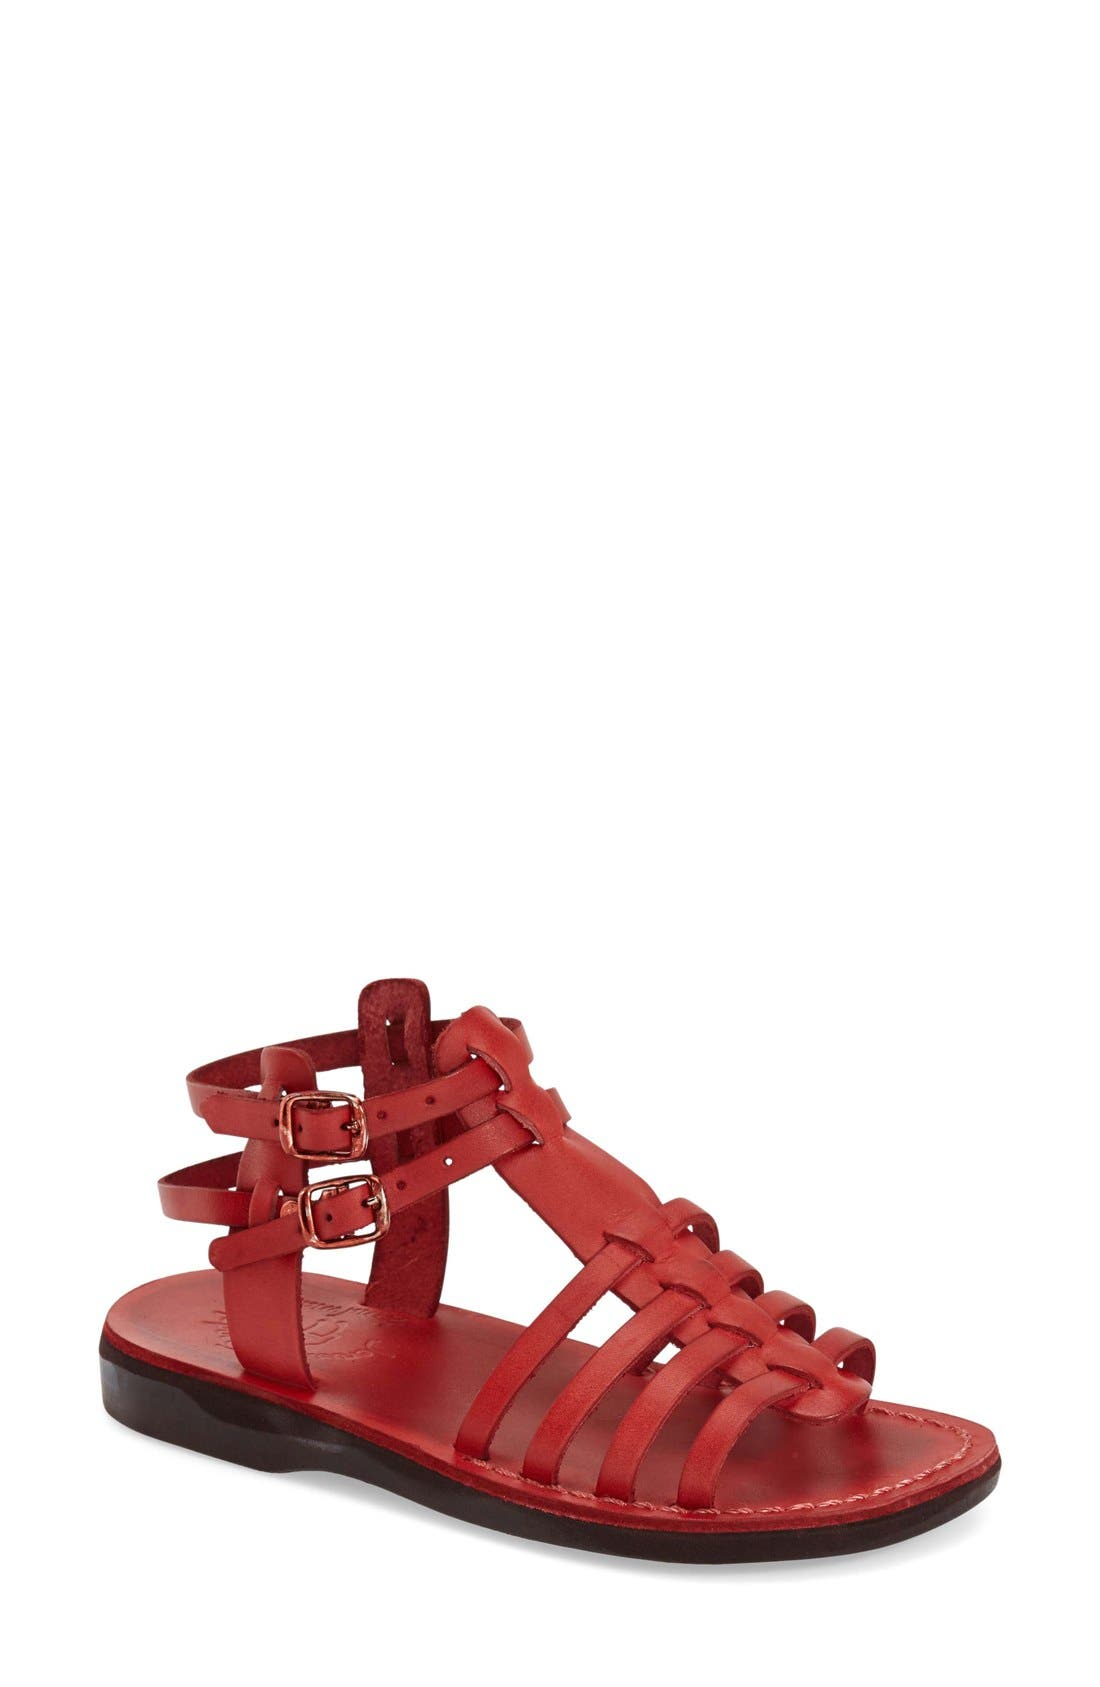 'Leah' Sandal,                         Main,                         color, Red Leather